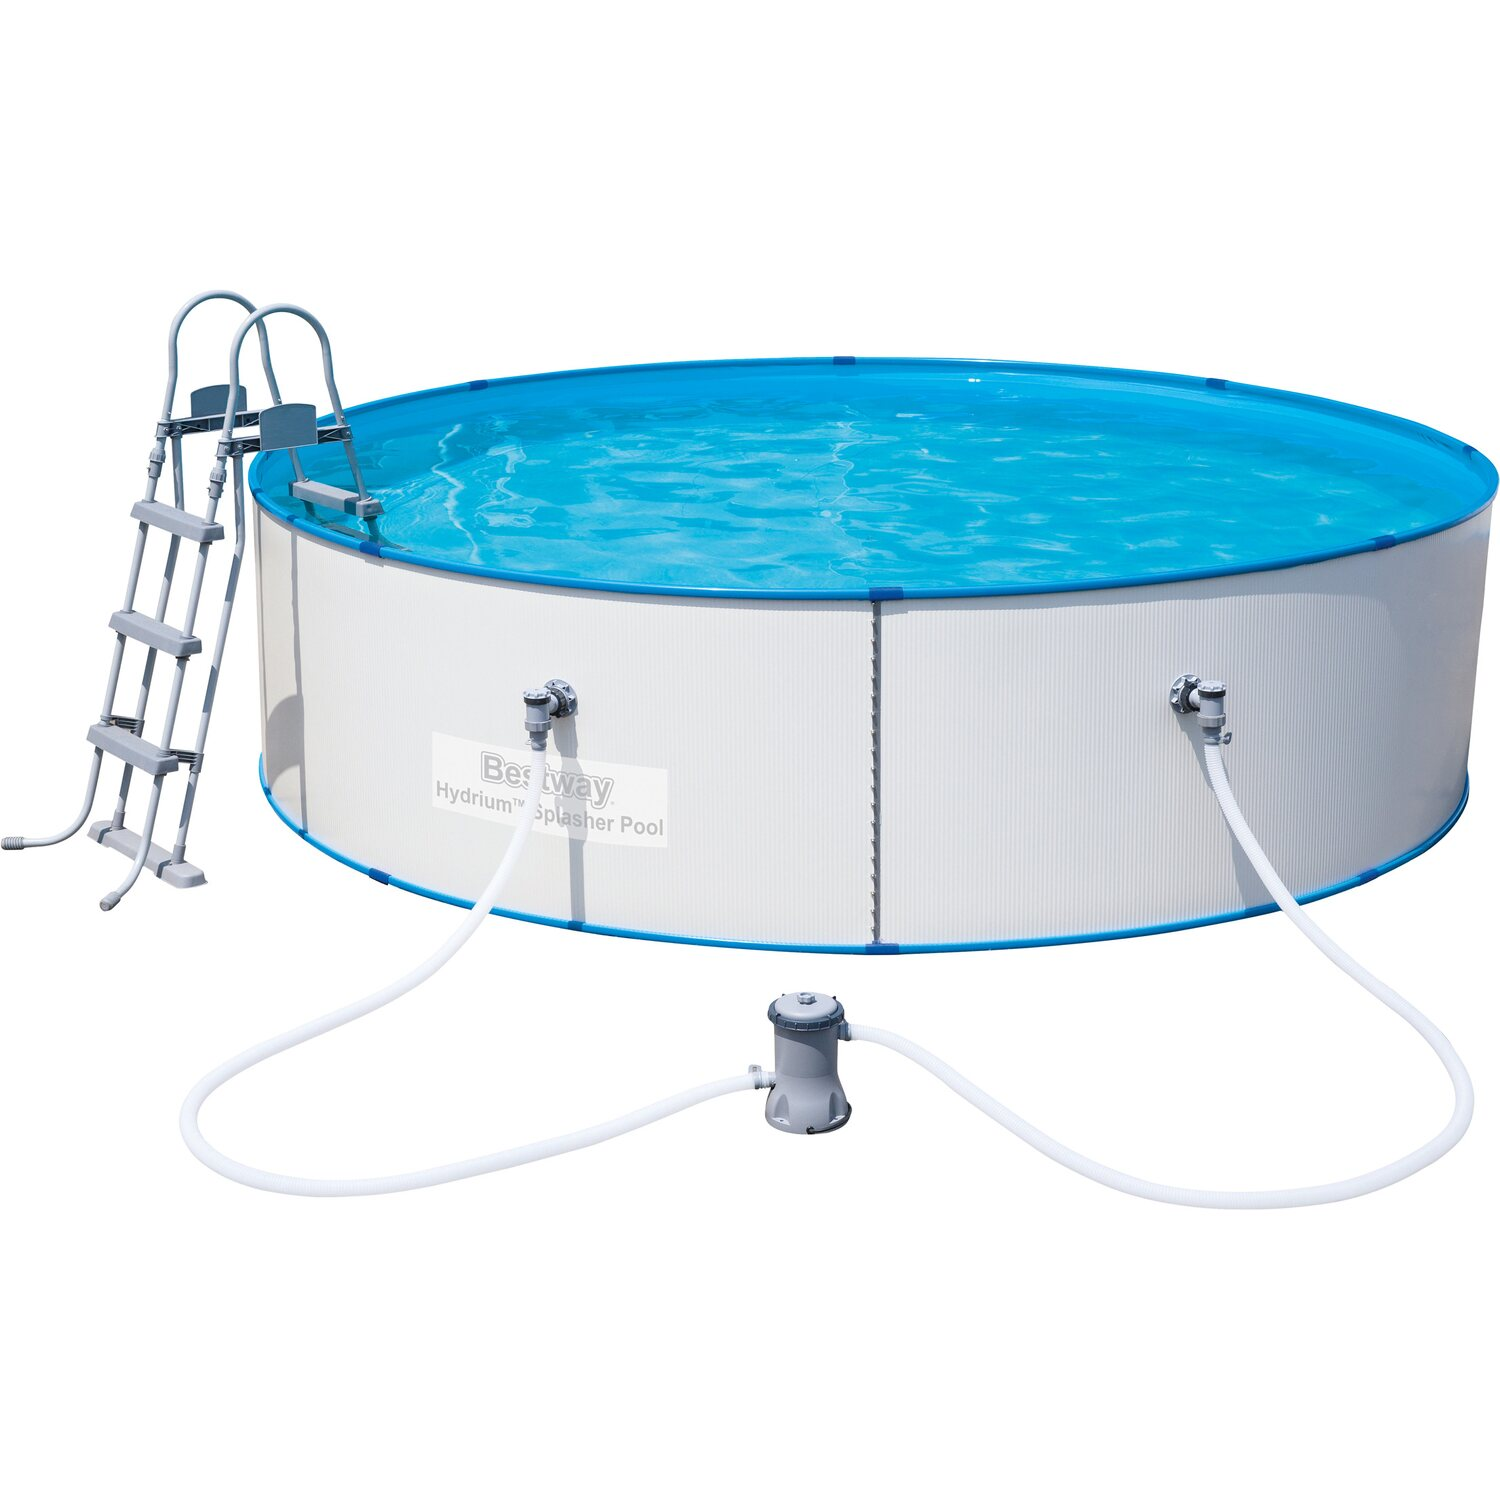 Pvc folienauskleidung f r bestway hydrium splashe pool for Folienauskleidung pool